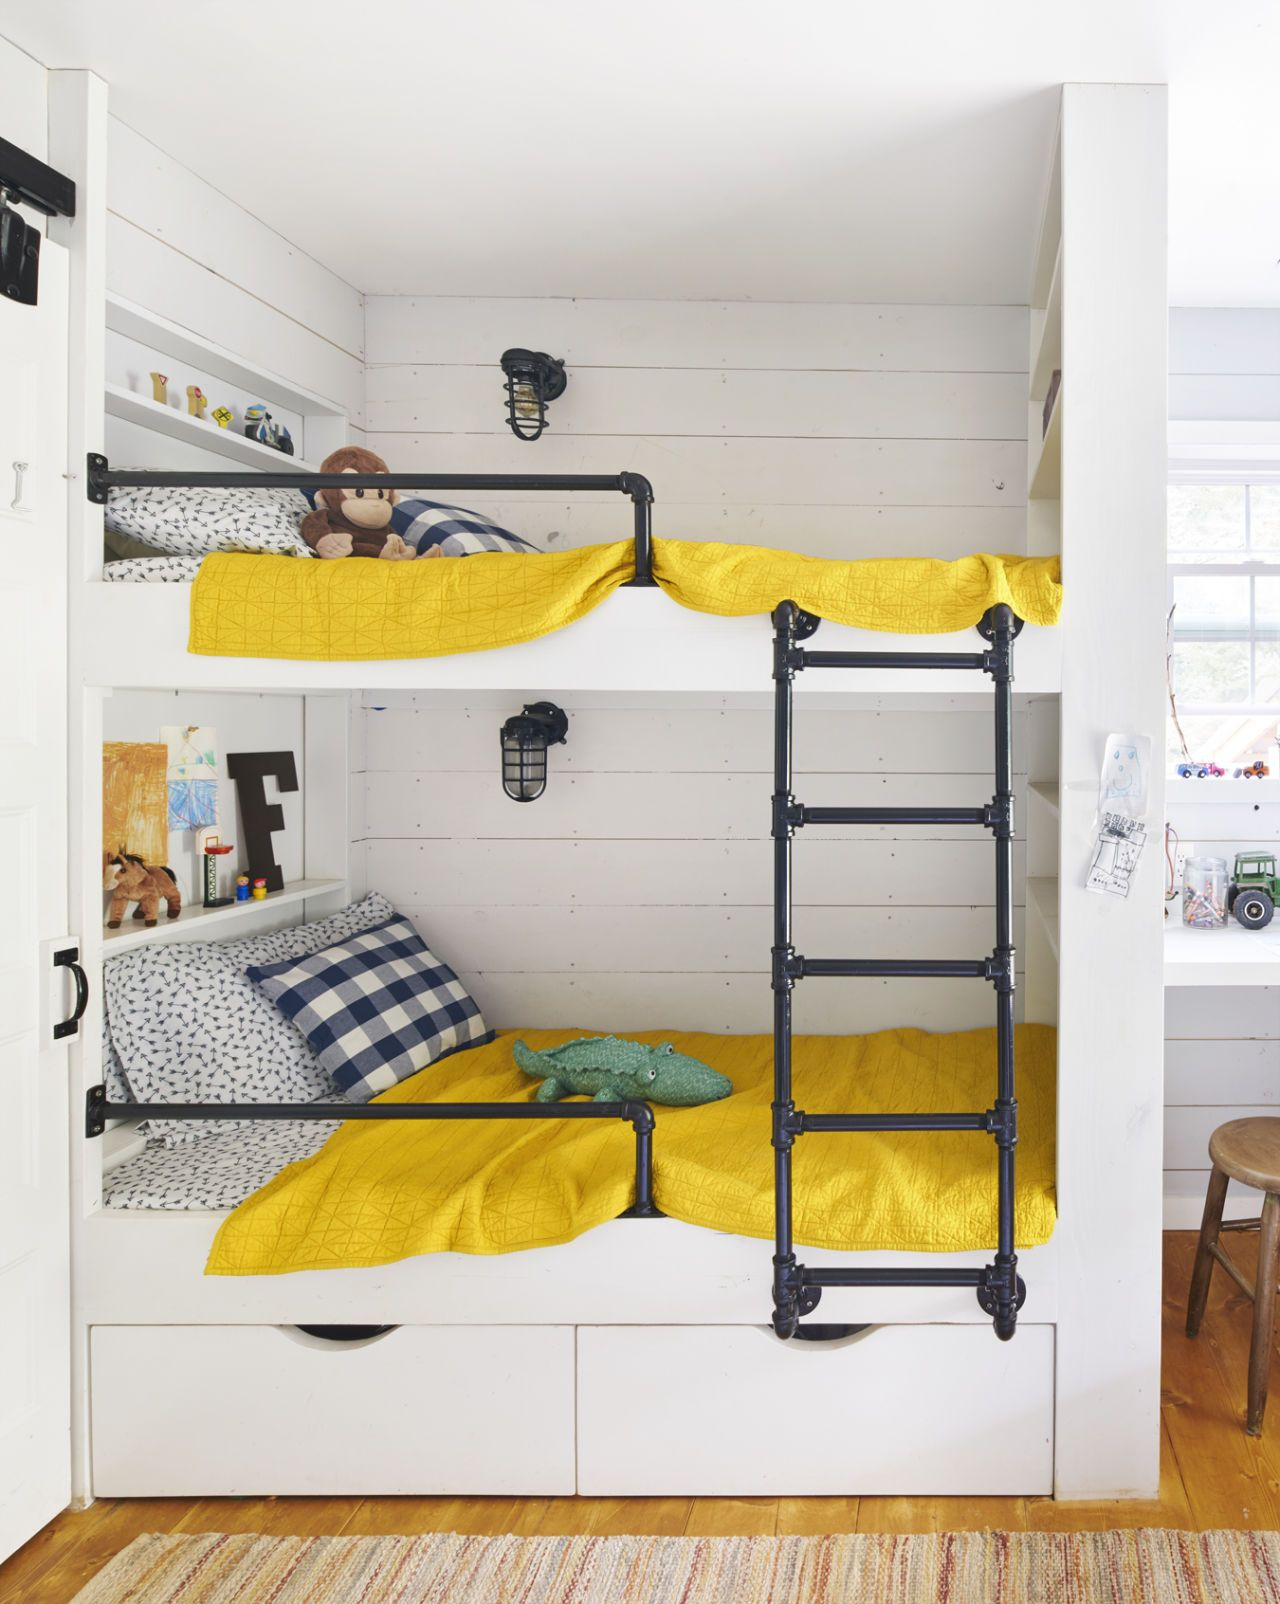 Built in loft bed ideas  This Oklahoma Couple Ditched Their Big City Home to Build a uNotSo